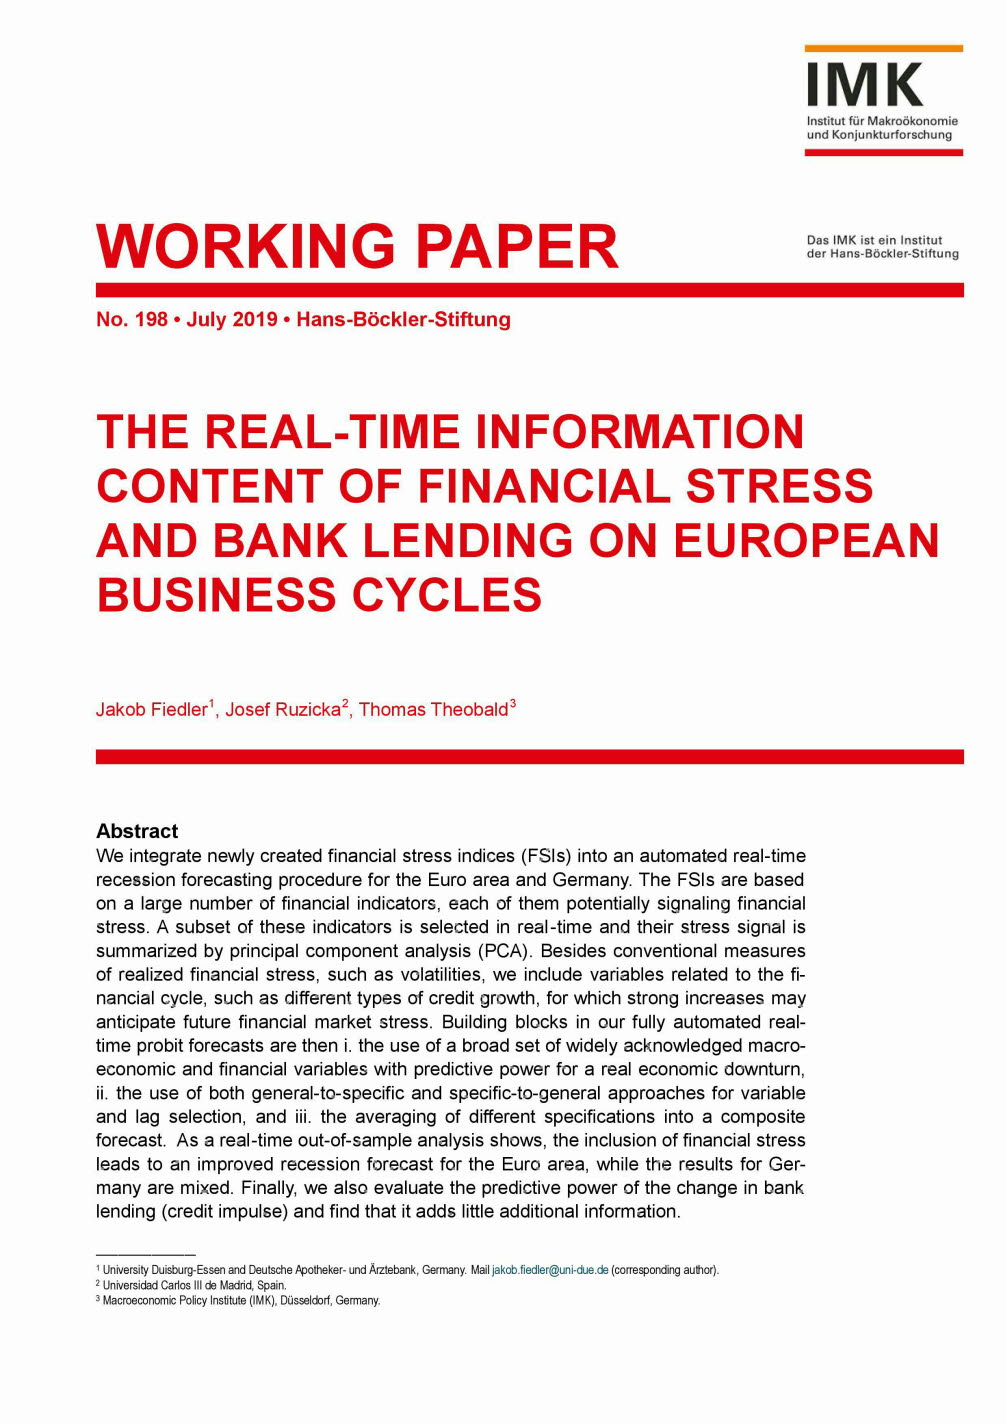 The Real-time information content of financial stress and bank lending on European business cycles